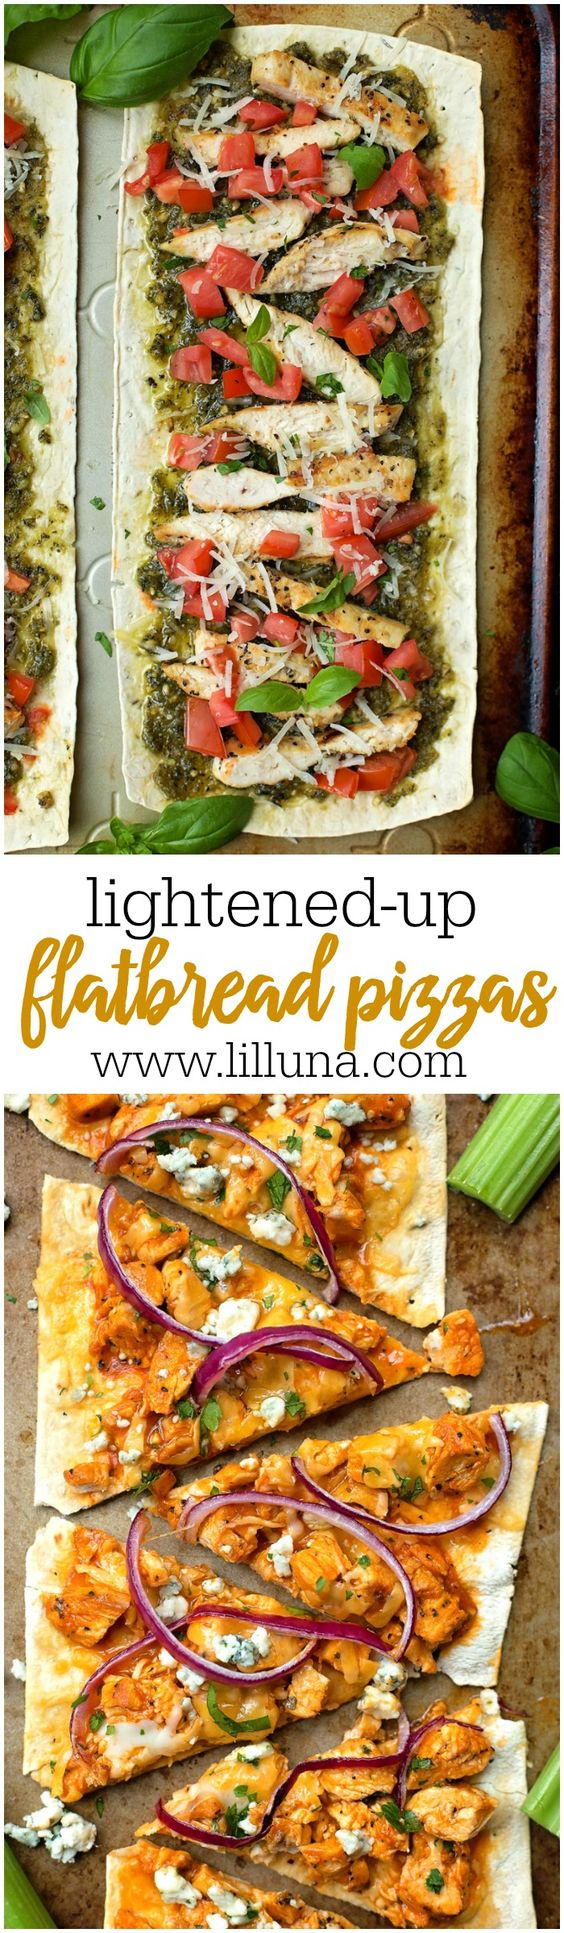 Lightened Up Flatbread Pizzas Recipes | Buffalo Chicken Pizza and Chicken Pesto pizza Recipes via lil' luna - lighter versions that are full of flavor!